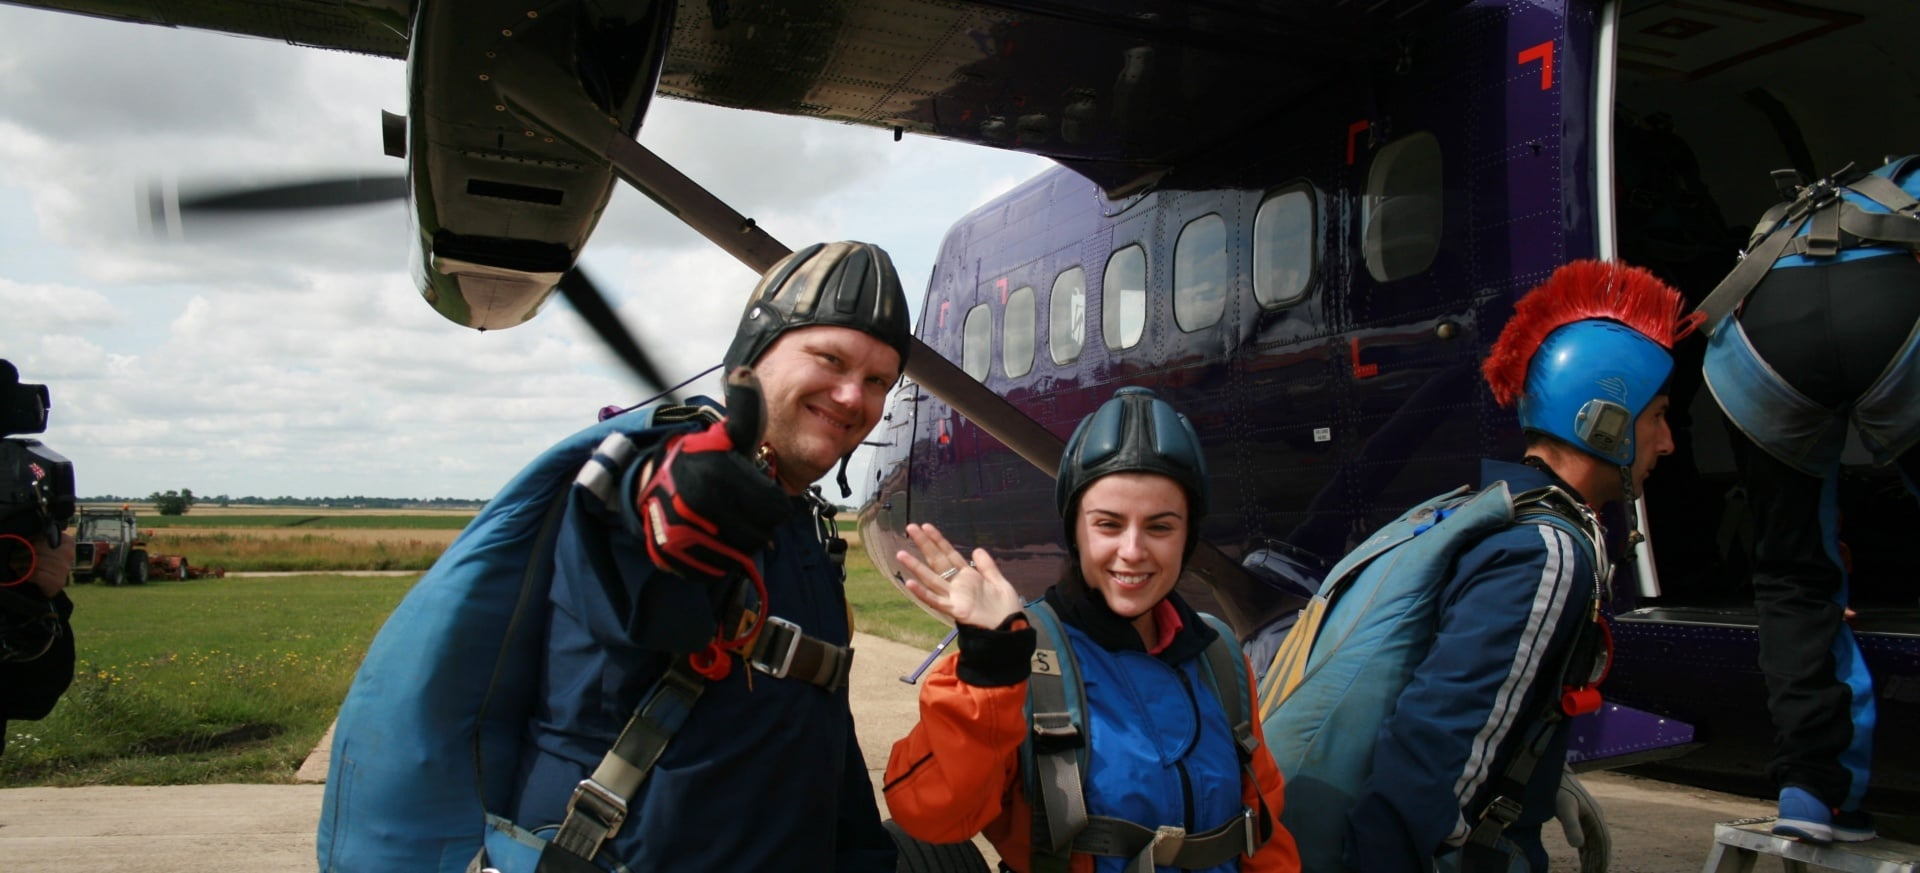 Skydiving Course Uk - Aff Level 1